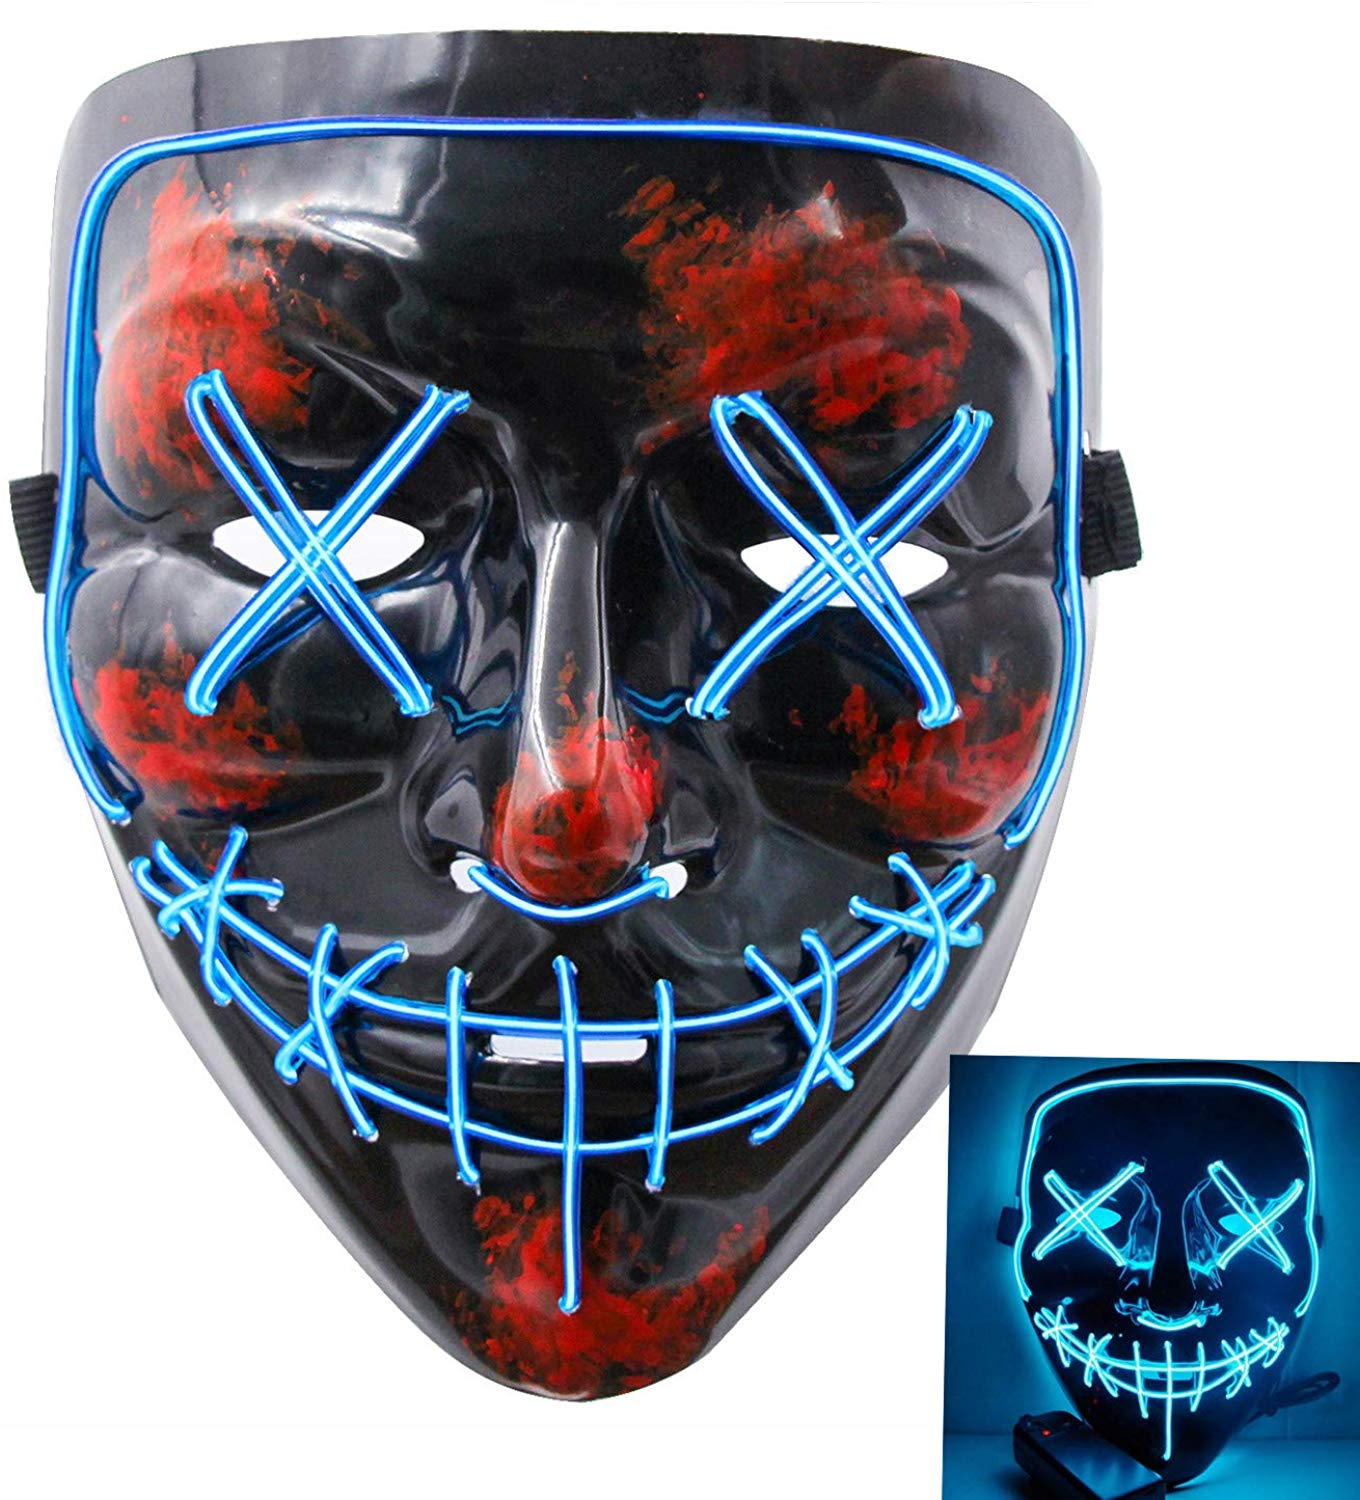 Tagital Halloween Mask Led Light Up Funny Masks The Purge Movie Scary Festival Costume Walmart Com Walmart Com